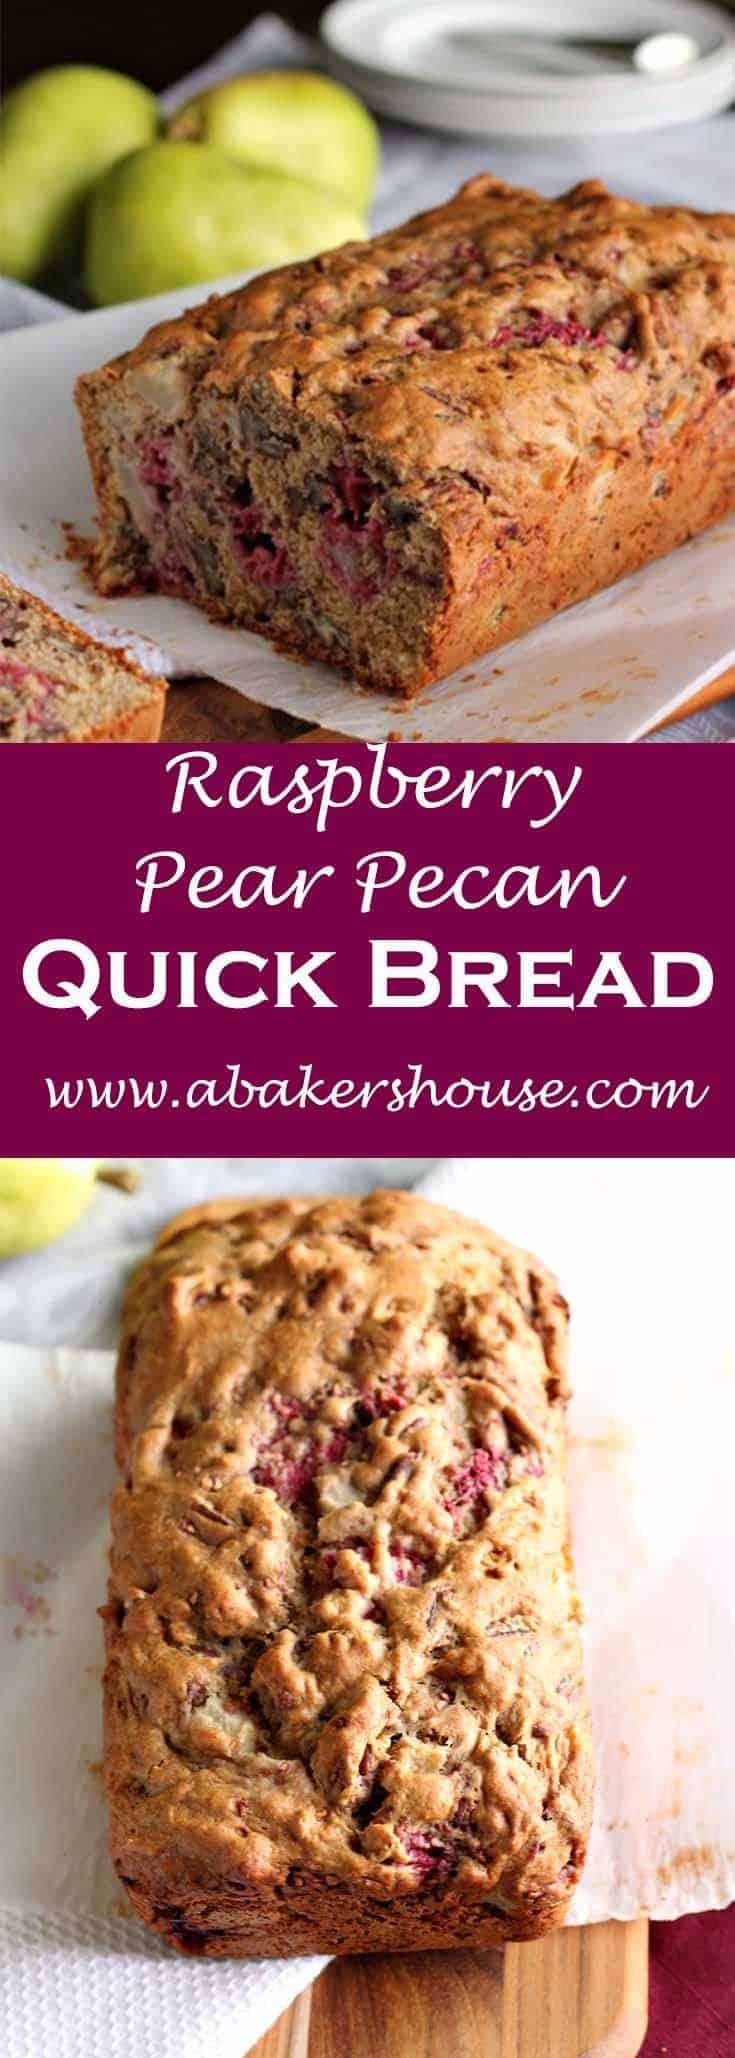 This quick bread recipe is loaded with pears, pecans, and raspberries. #quickbread #abakershouse #raspberry #pears #pecan #homemadebread